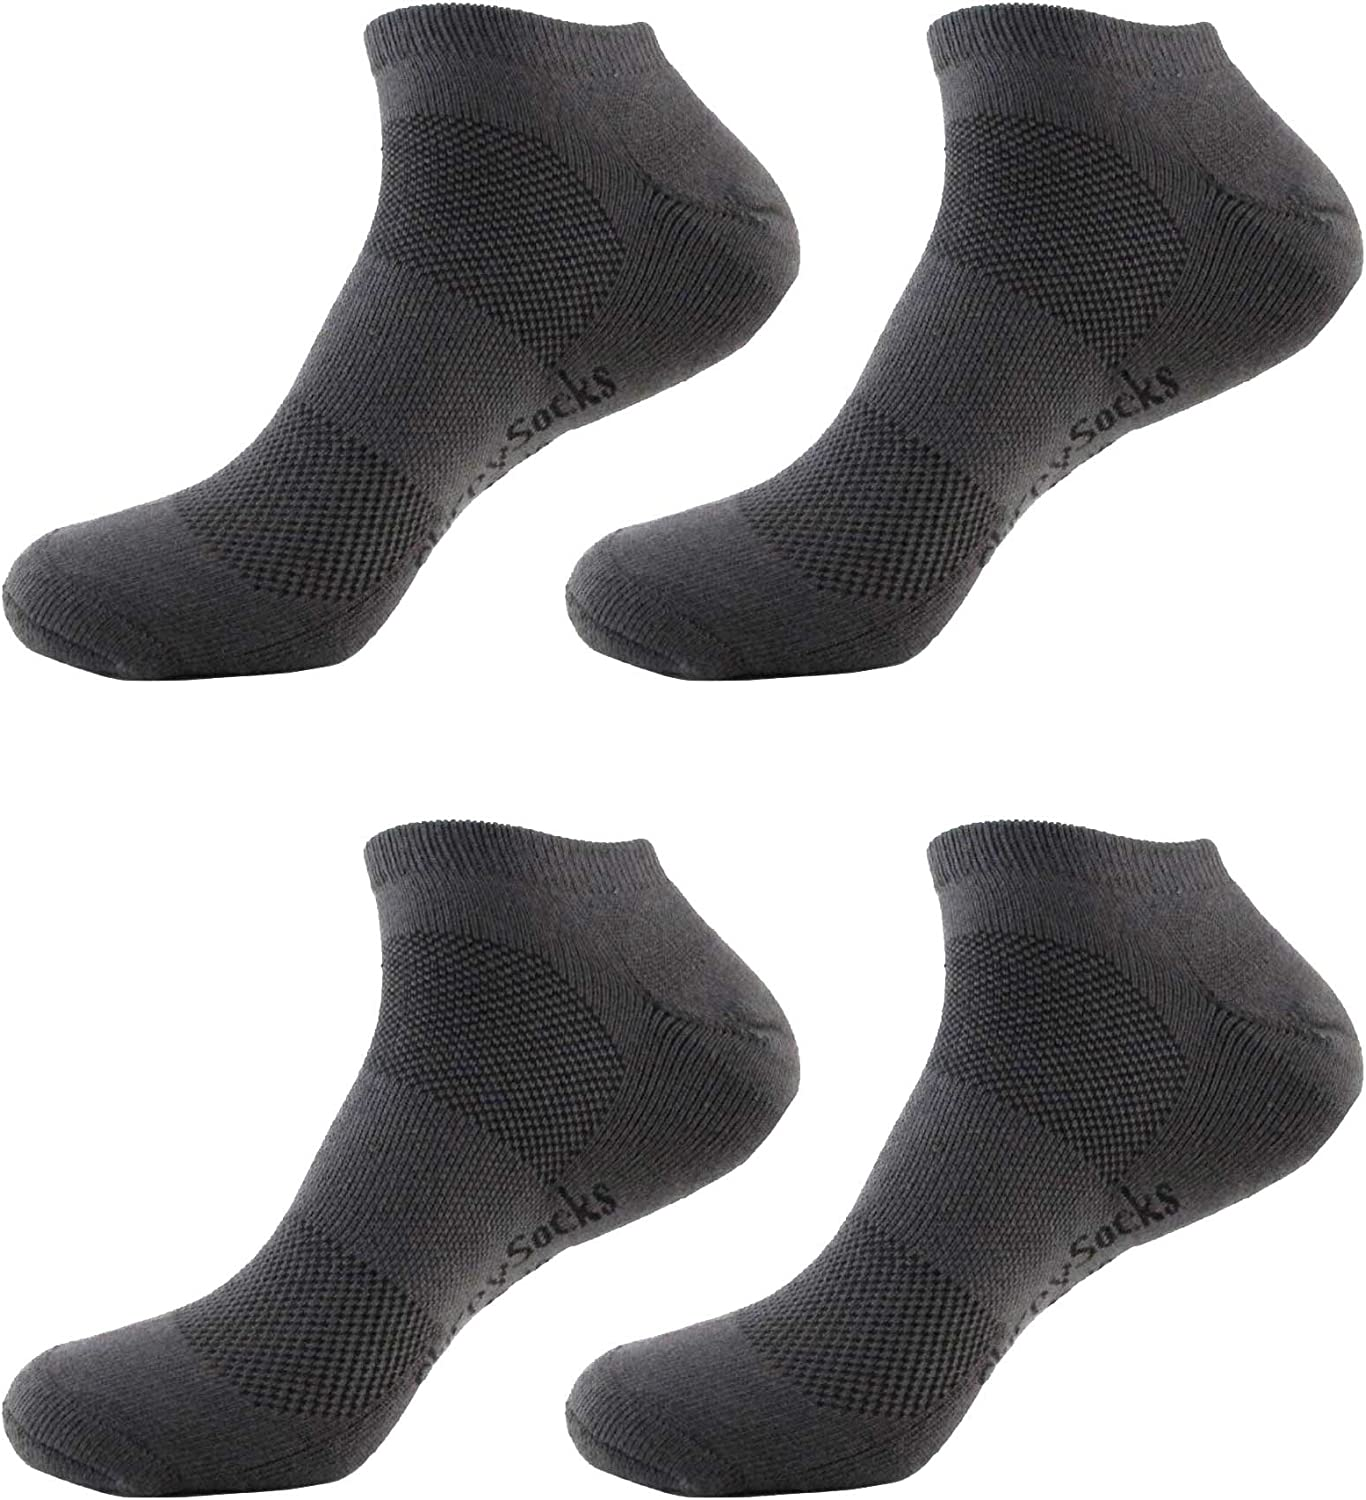 Women's Rayon from Bamboo Fiber Sports Superior Wicking Athletic Ankle Socks